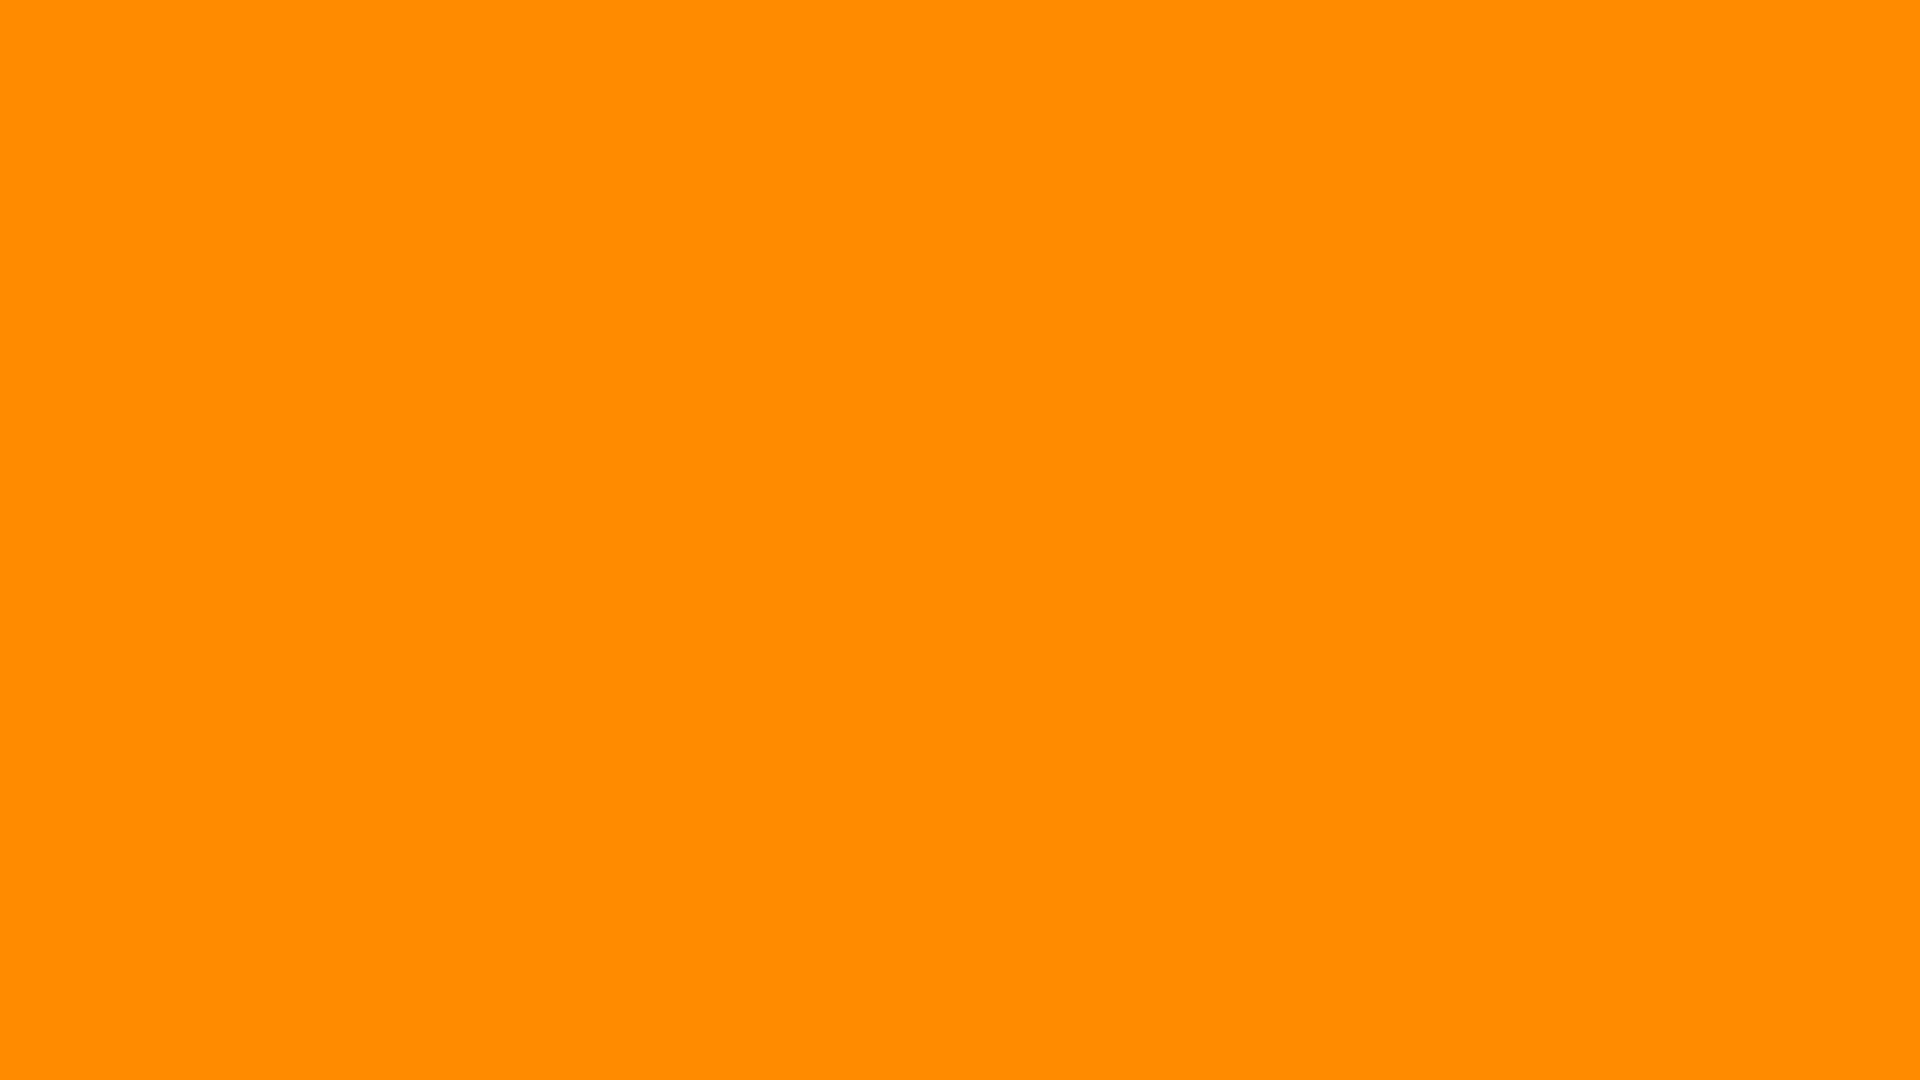 1920x1080 Dark Orange Solid Color Background